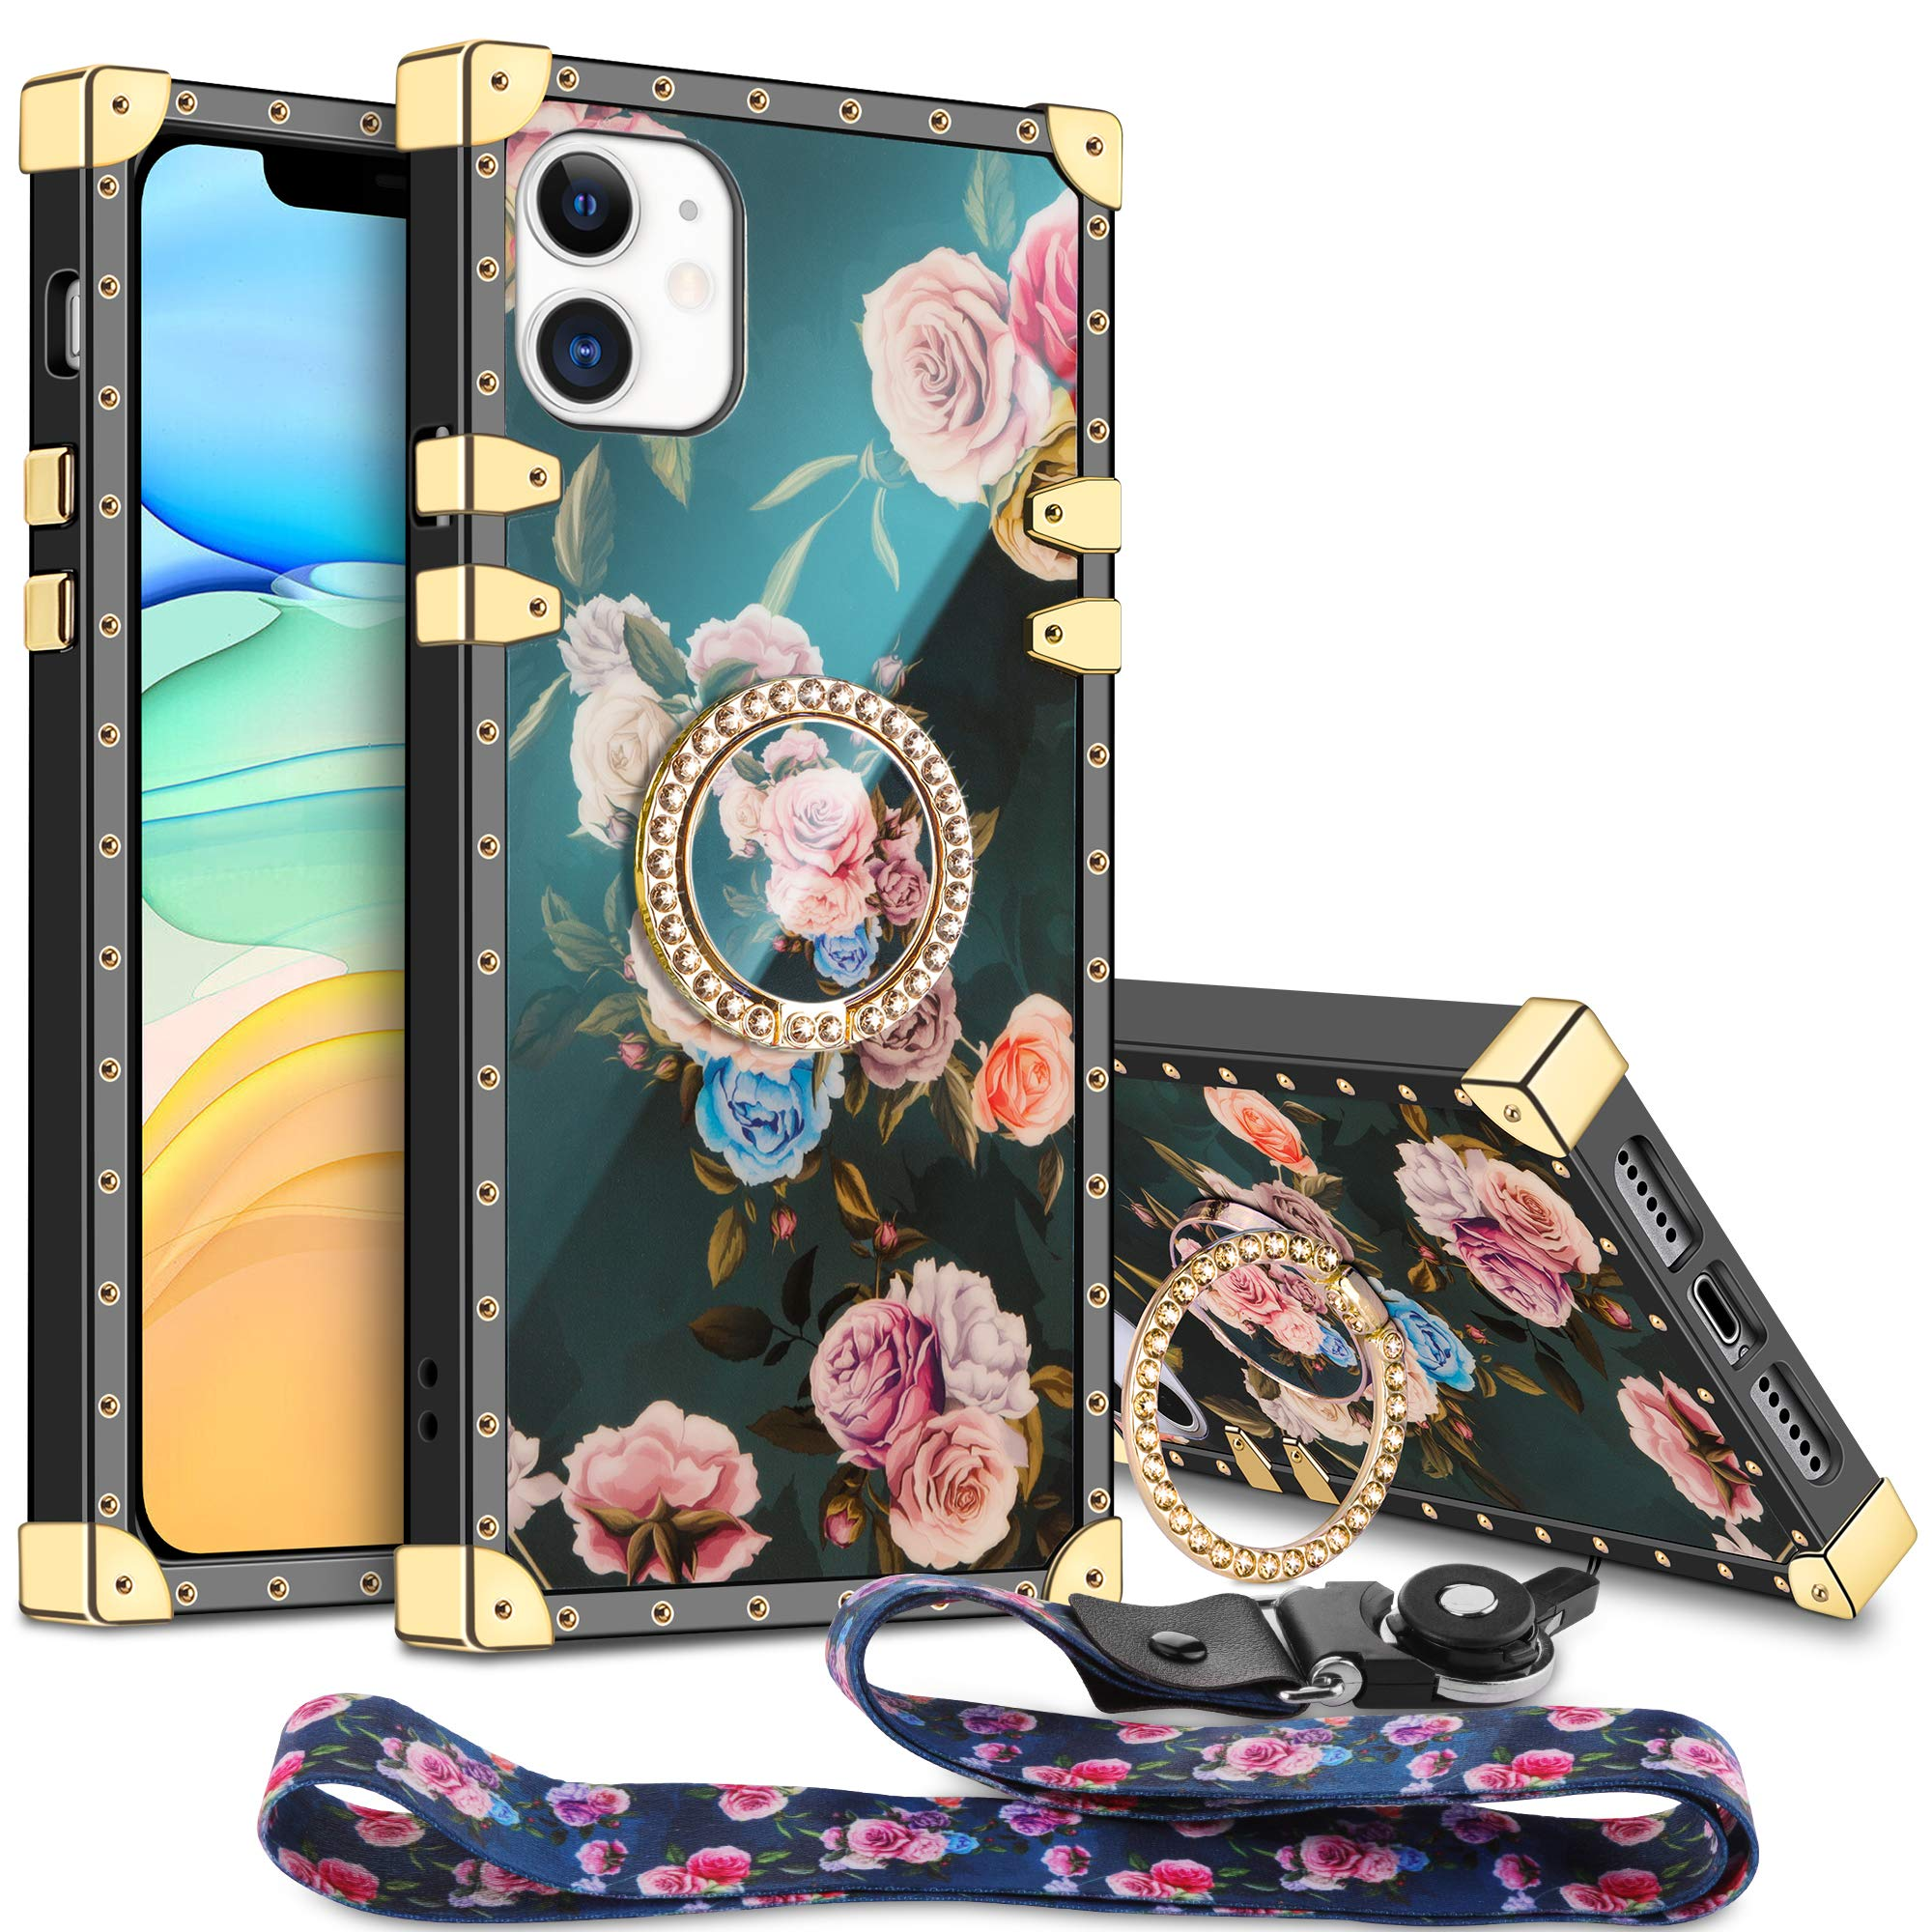 Aemotoy for iPhone 11 Case Floral Cute with Ring Holder Grip Lanyard Girly Square Reinforced Corners Protective Shell Flexible TPU Shockproof Cover for 6.1 inch iPhone 11 Peony